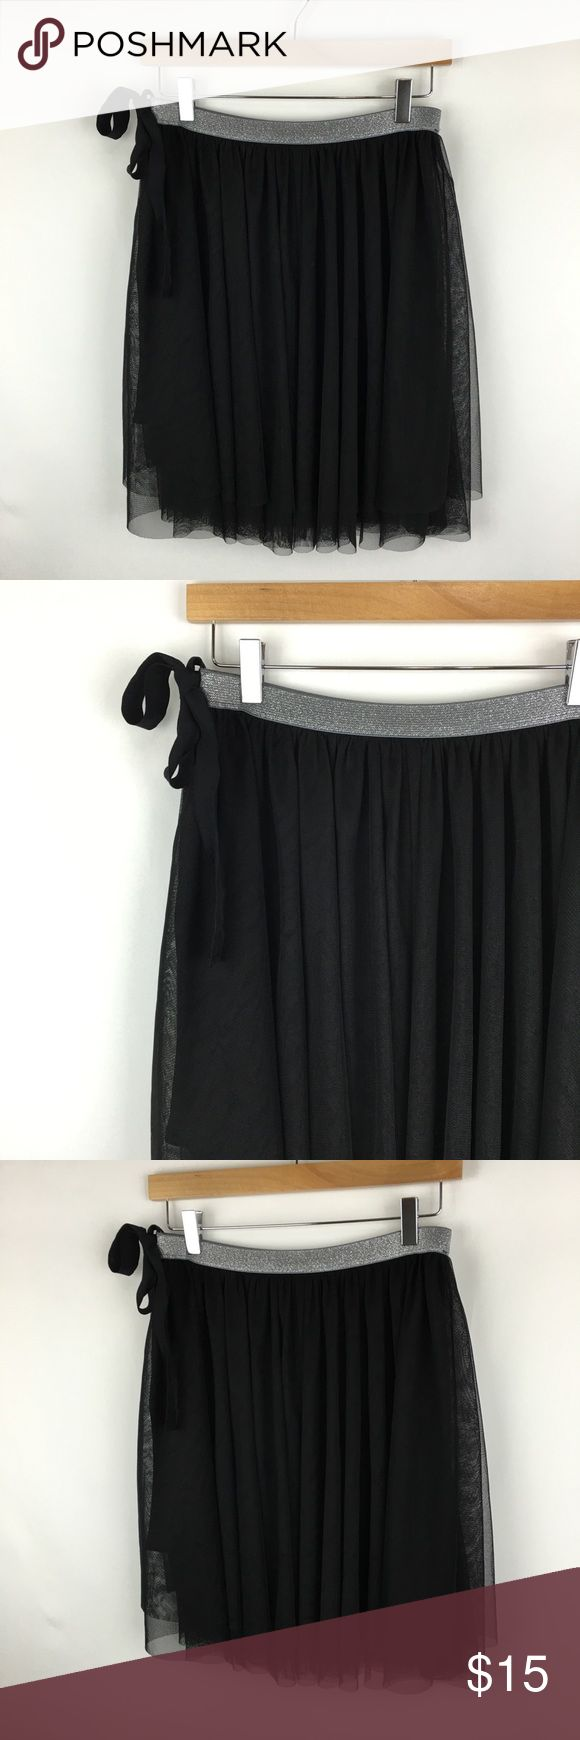 H&M Divided skirt sz 8 H&M Divided skirt sz 8. Gently worn in great condition. Divided Skirts Mini